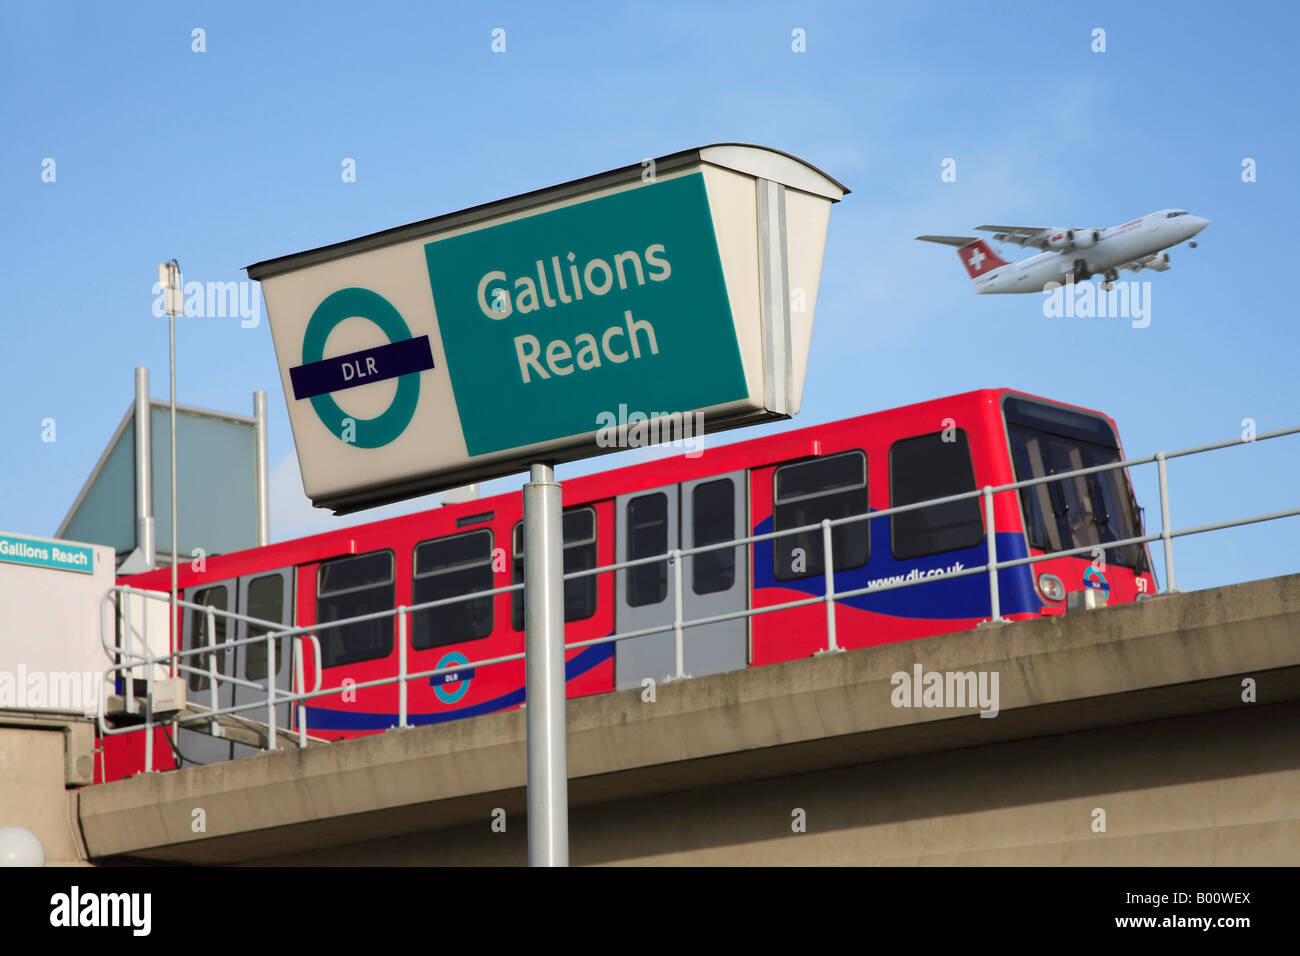 Docklands Light Railway Train at Gallions Reach Station with Swissair Plane Overhead. Stock Photo